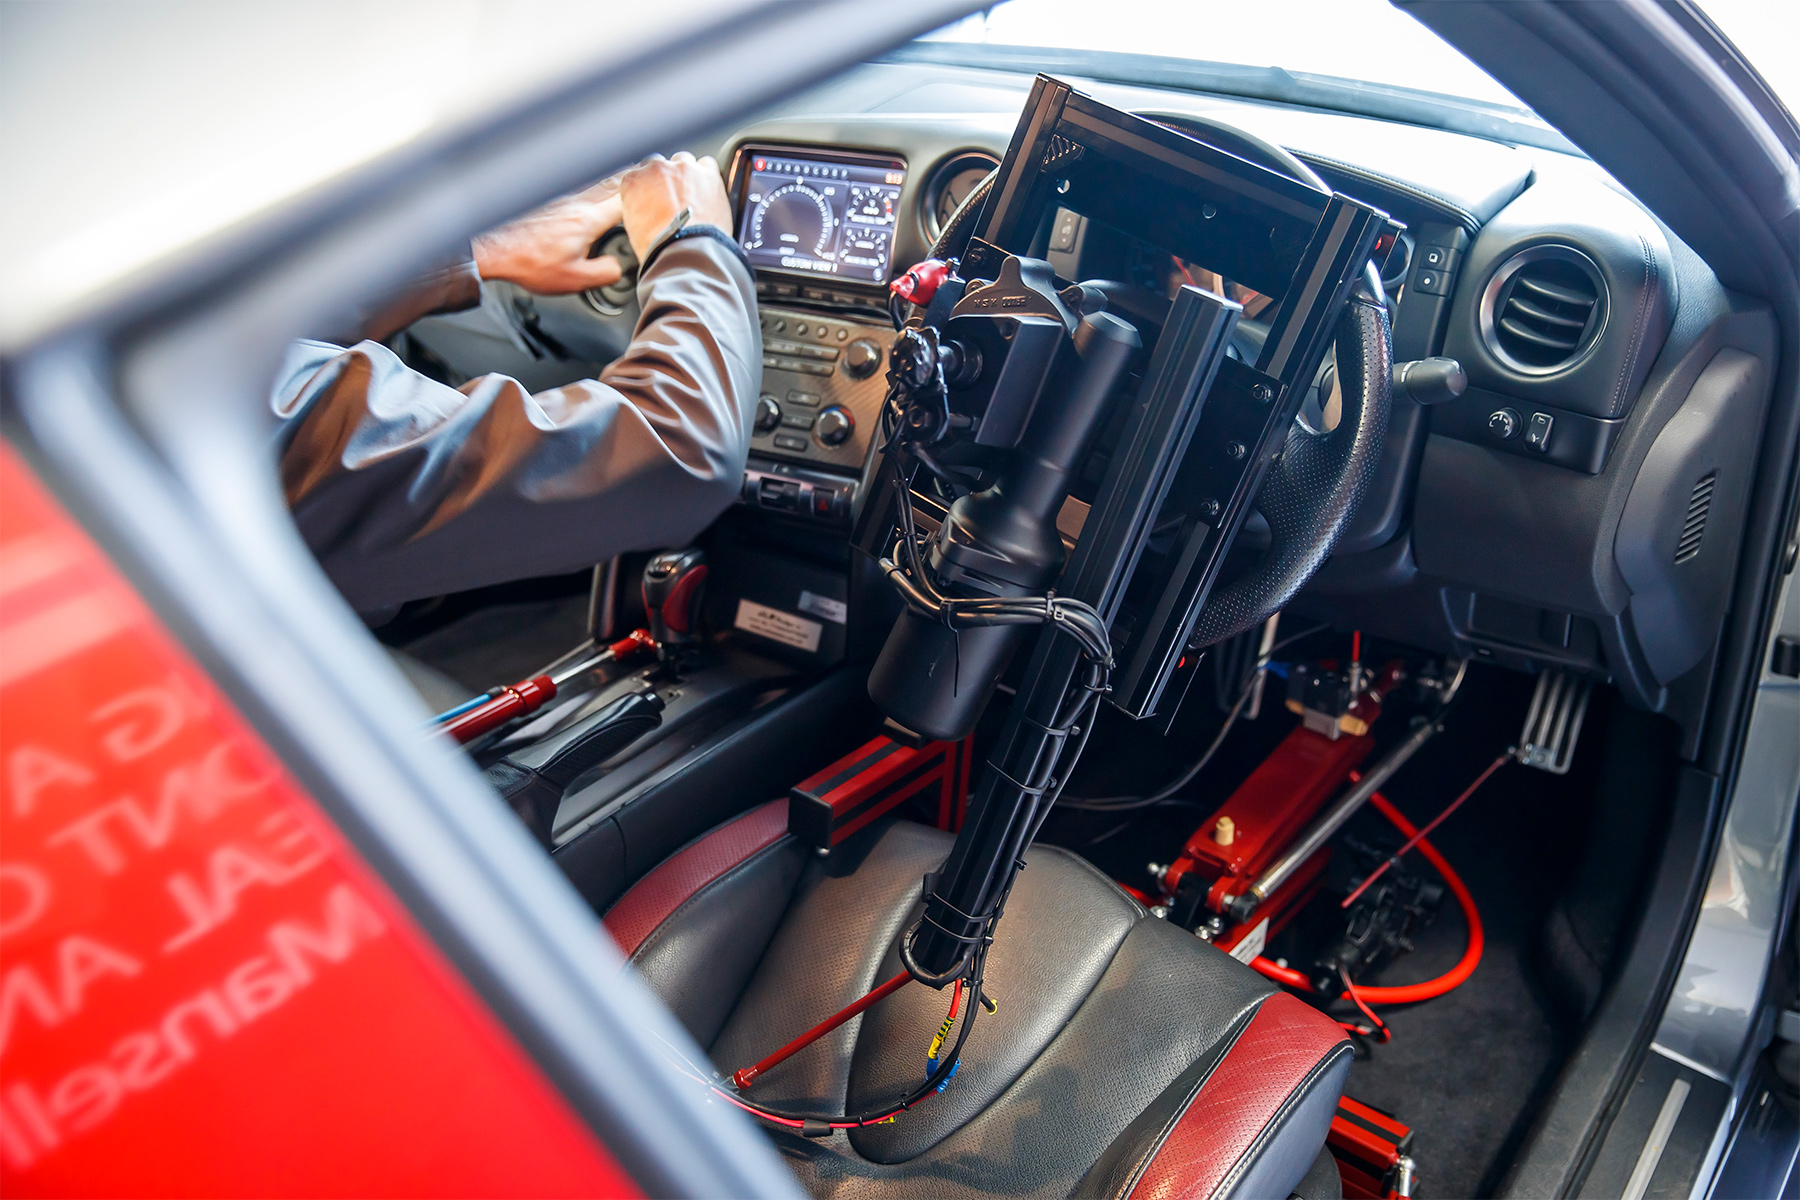 TrackWorthy-Nissan-GT-R-C-operated-by-DualShock-4-controller-and-Jann-Mardenborough-17